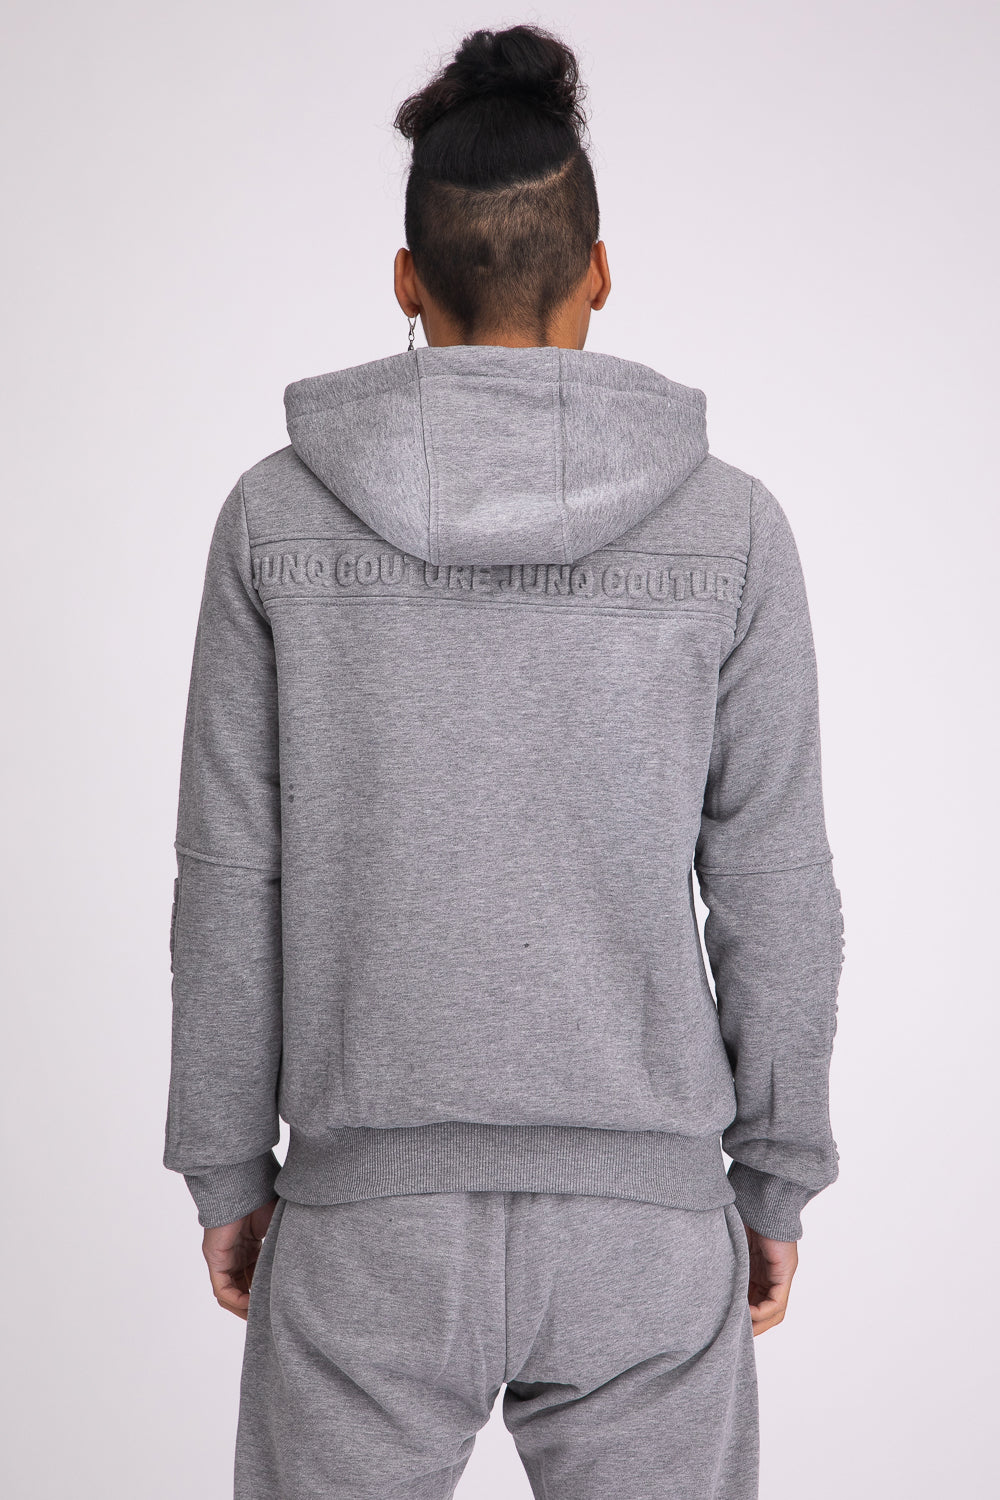 Style: Barbican 01 Grey Hoody - Junq Couture